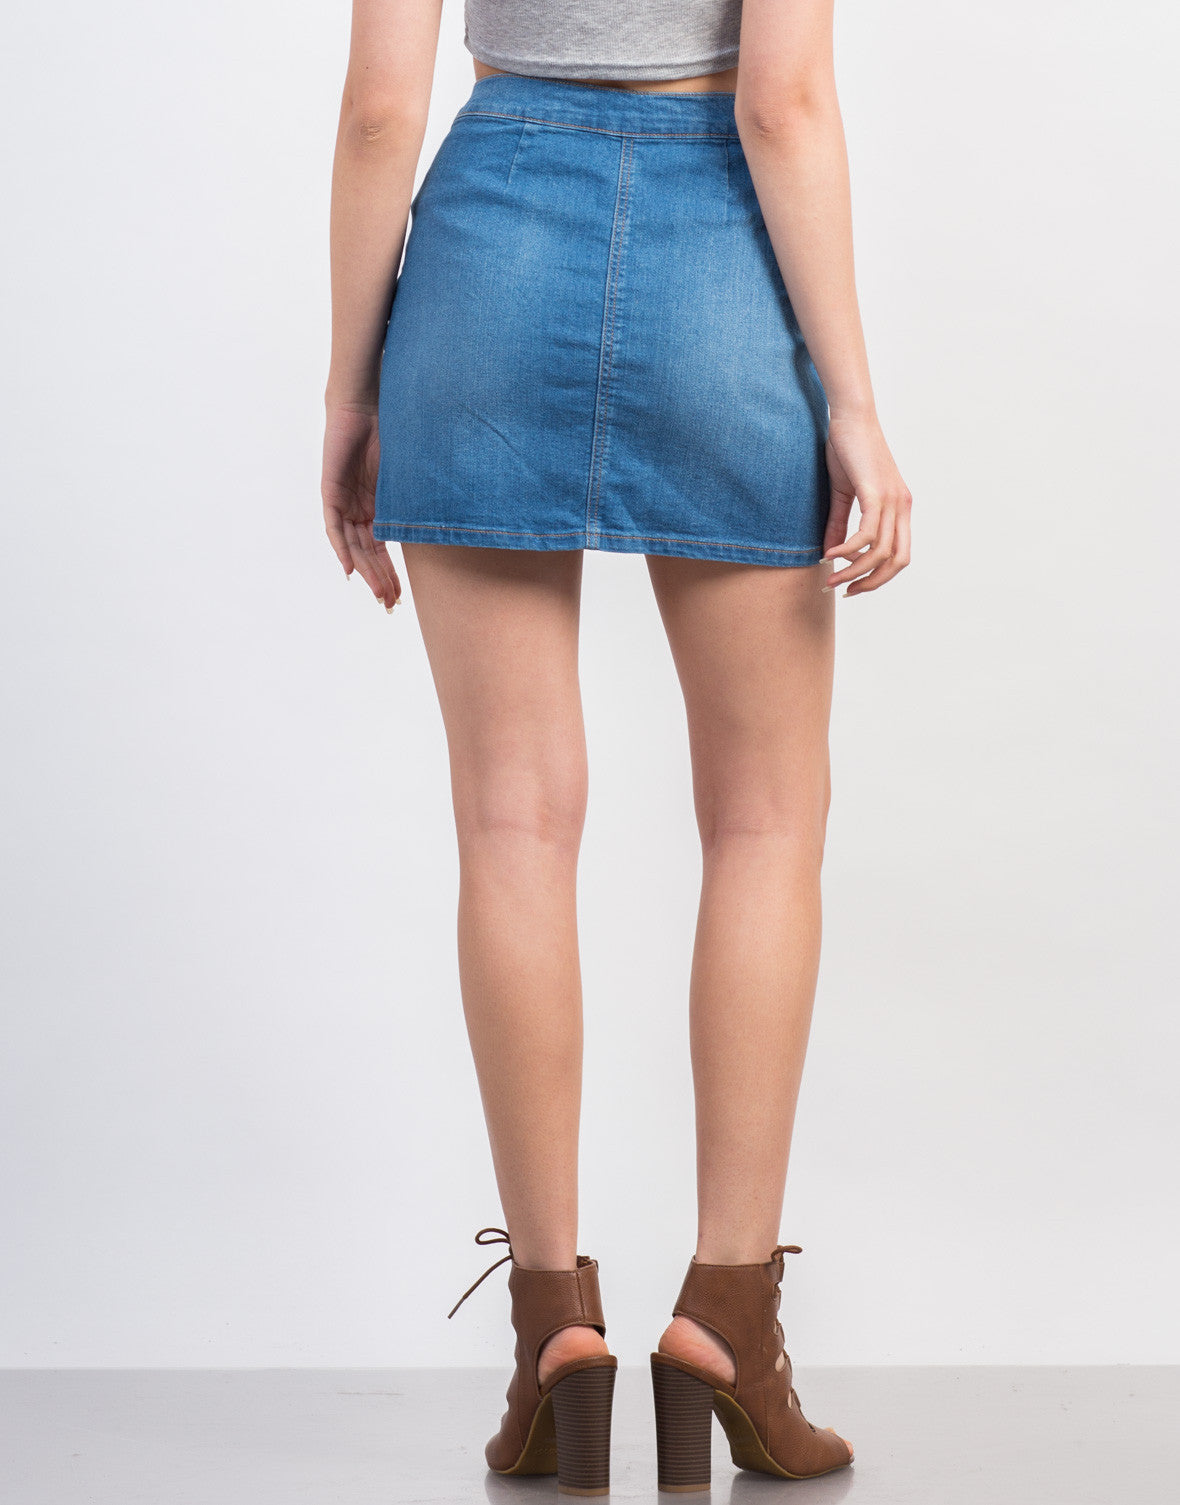 Back View of Buttoned Denim Skirt